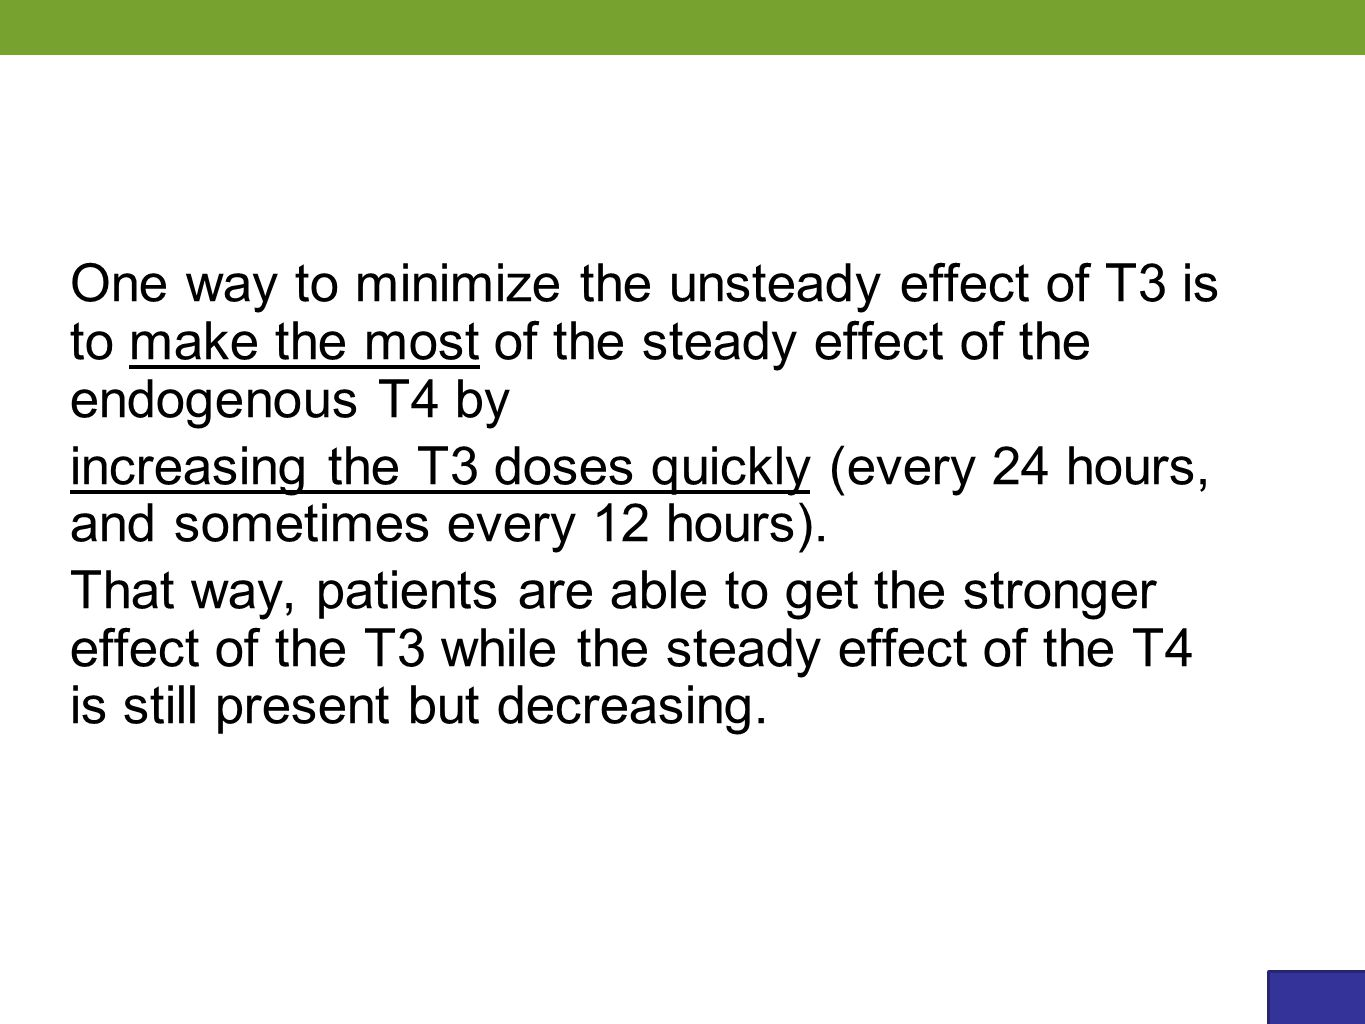 One way to minimize the unsteady effect of T3 is to make the most of the steady effect of the endogenous T4 by increasing the T3 doses quickly (every